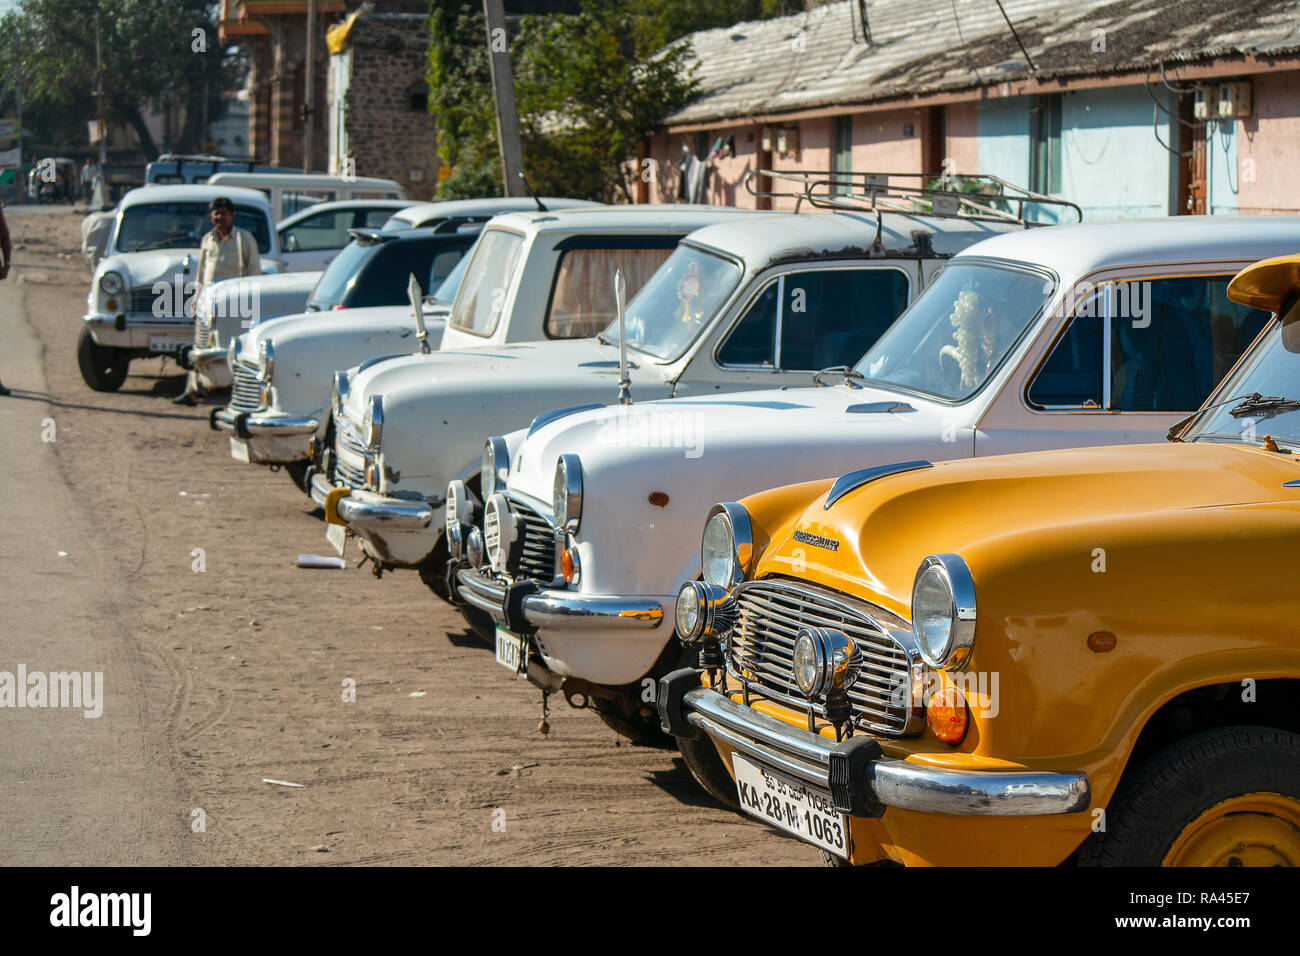 A line of parked so called 'King of India' Ambassador Taxi's from the Hindustan Motor company. - Stock Image